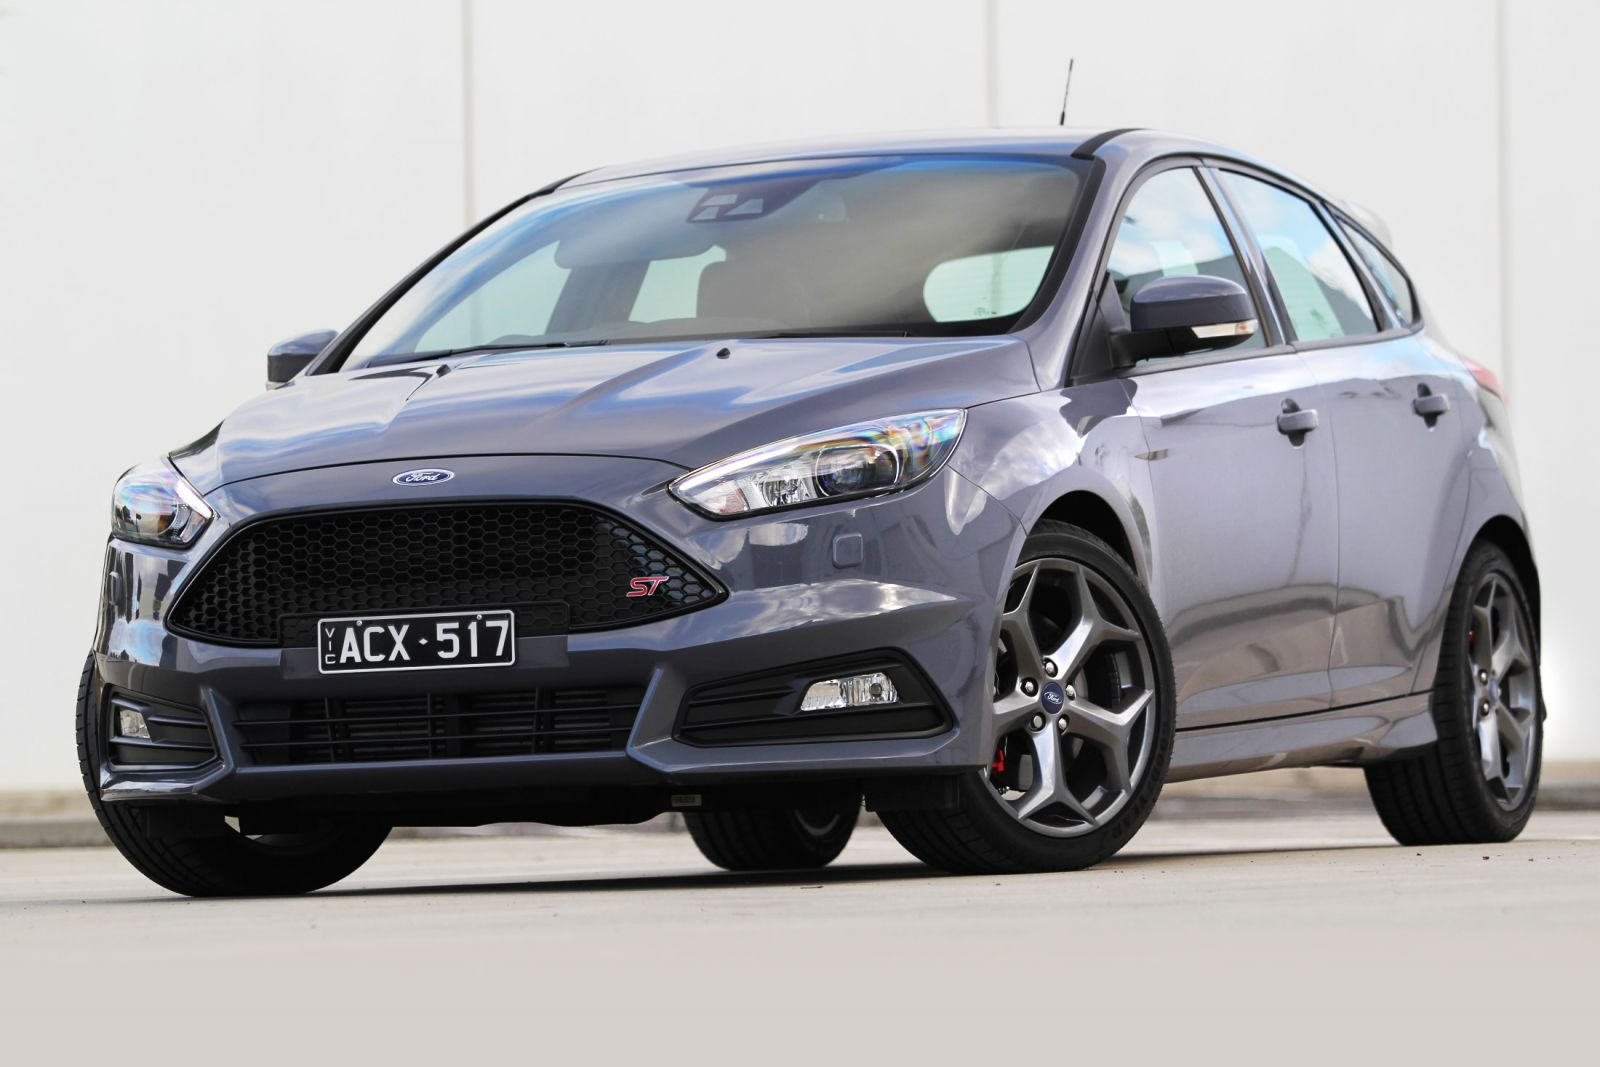 2015 Ford Focus ST Review: Ford's Speedy Hatch Gets An Update